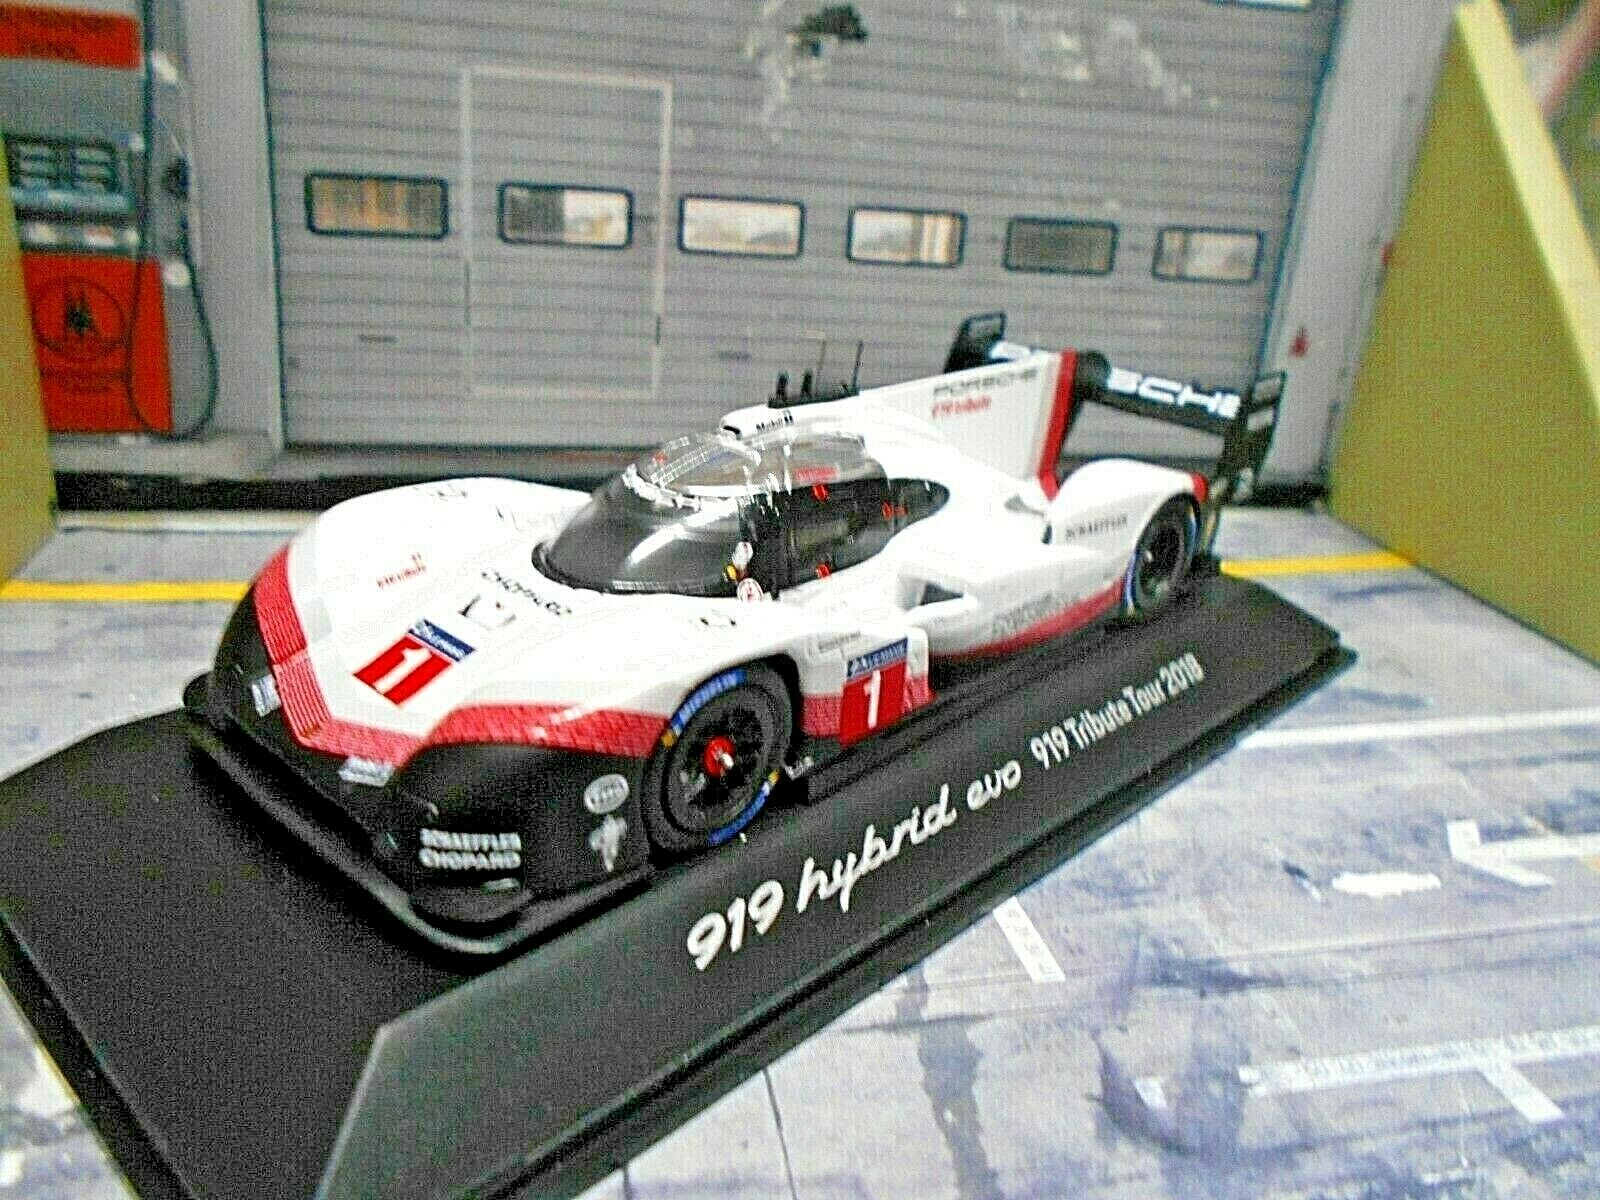 Porsche 919 Tribute record bucle del norte 2018 nurburgring 2018 racing Spark 1 43